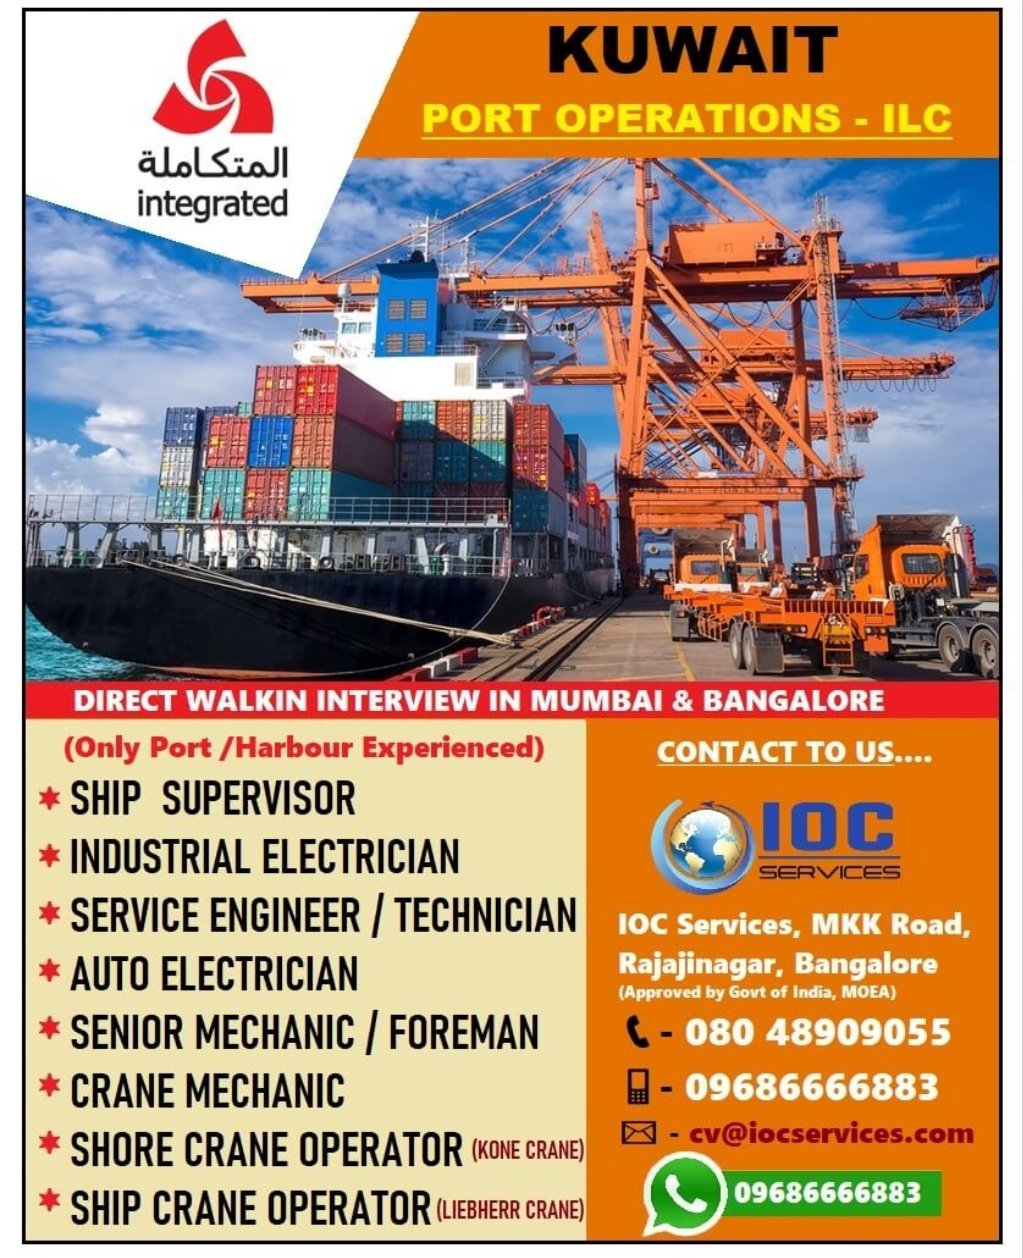 PORT OPERATIONS-ILC-KUWAIT